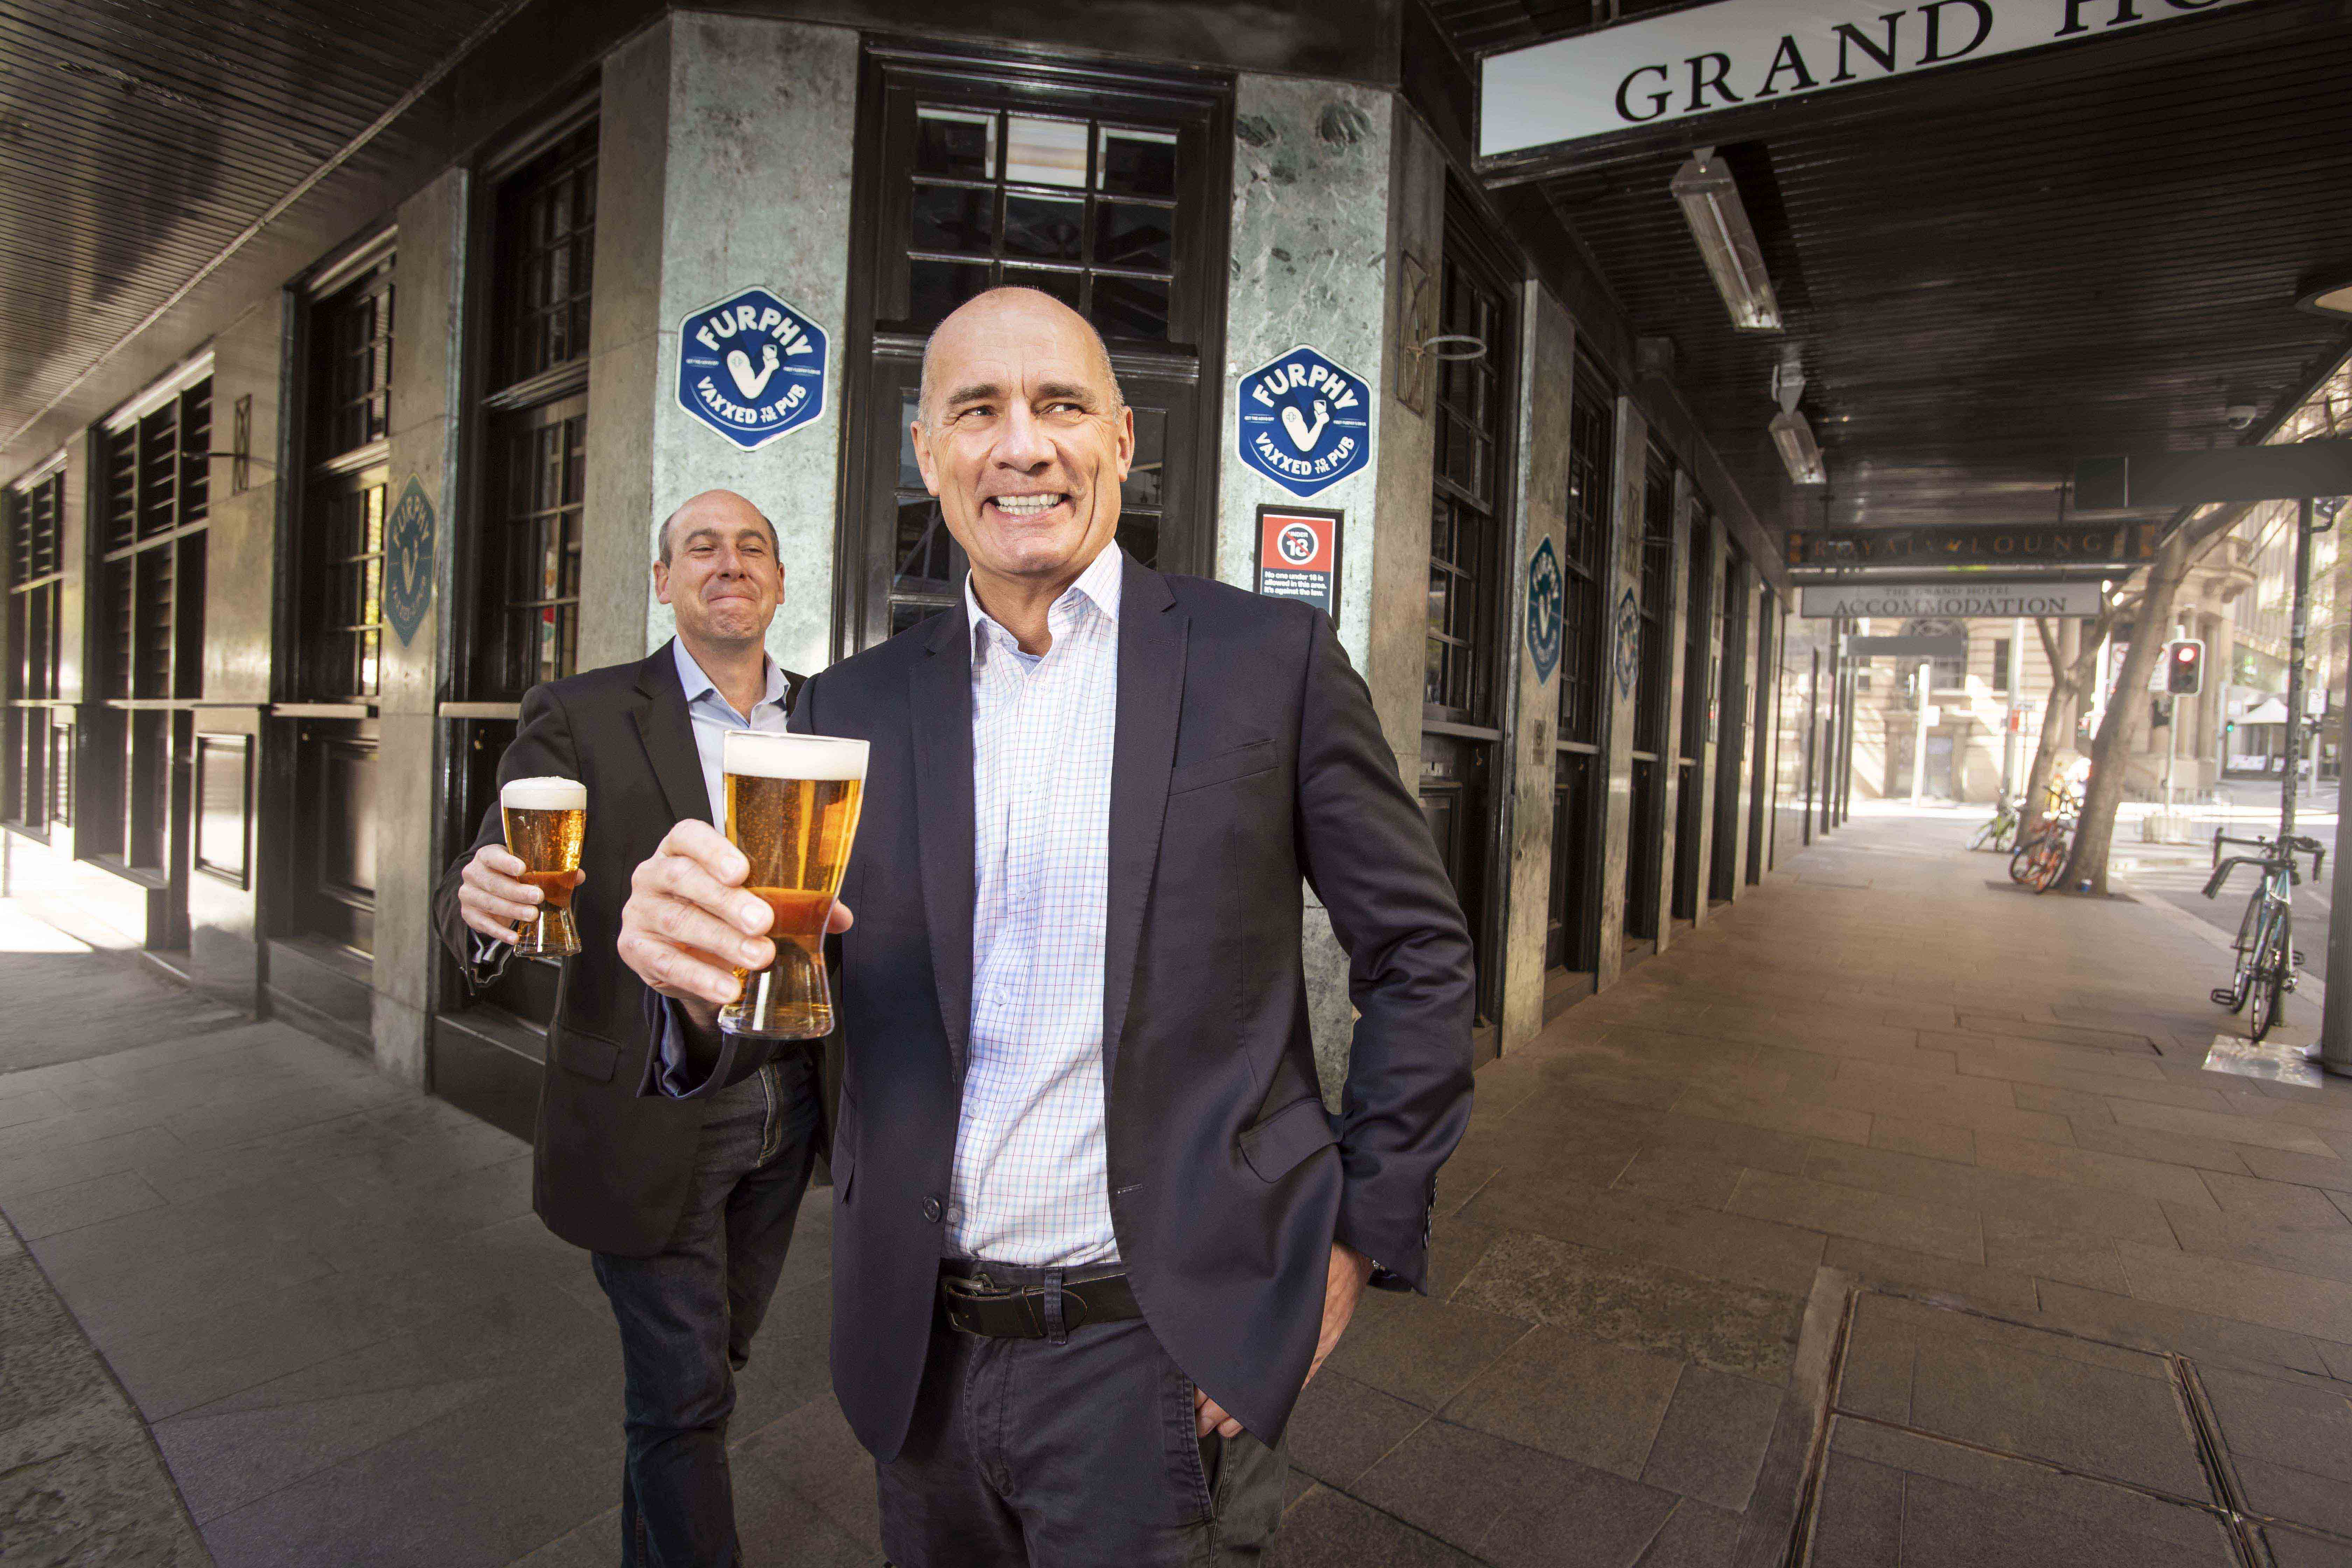 Double jabbed beer drinkers rewarded with a free glass by Lion